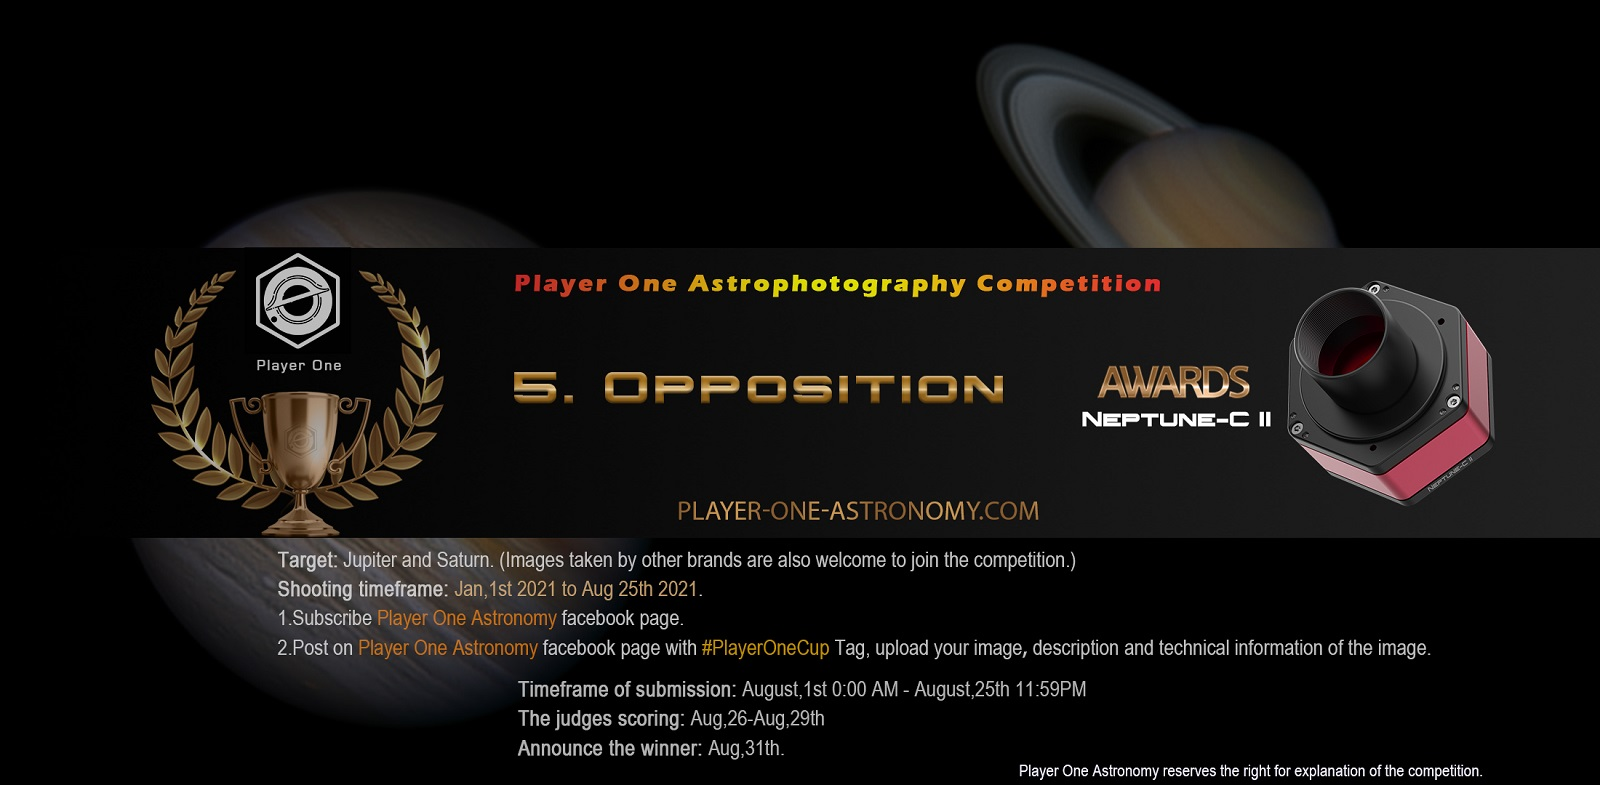 August: Round 5 of Player One Astrophotography Competition : Opposition